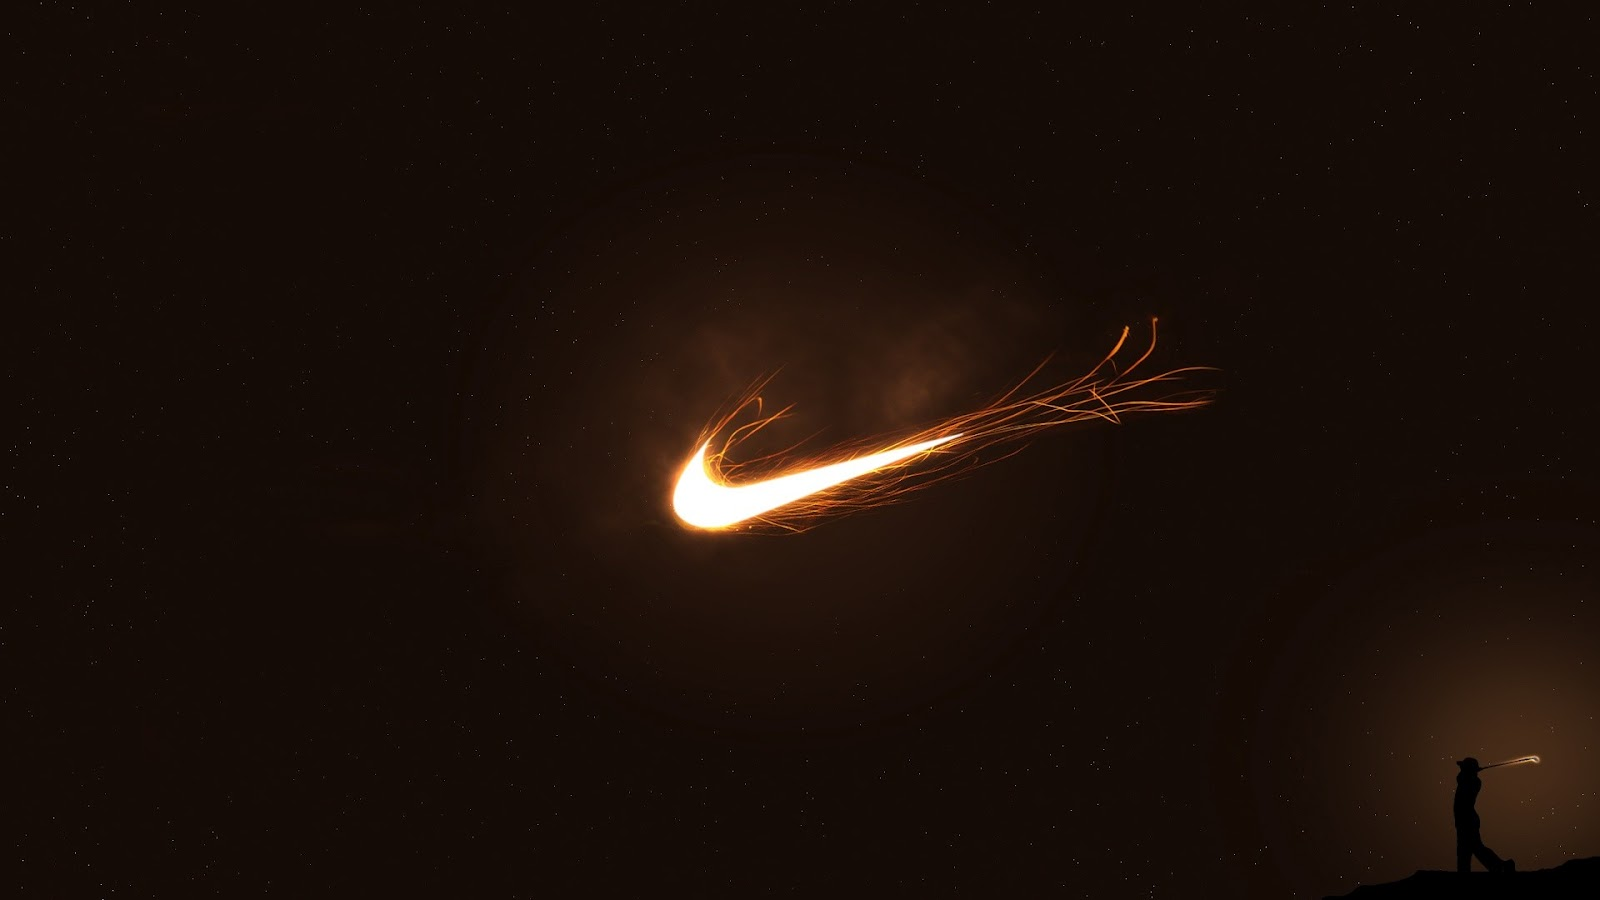 Nike brand logo minimal hd wallpapers desktop wallpapers - Nike wallpaper hd ...